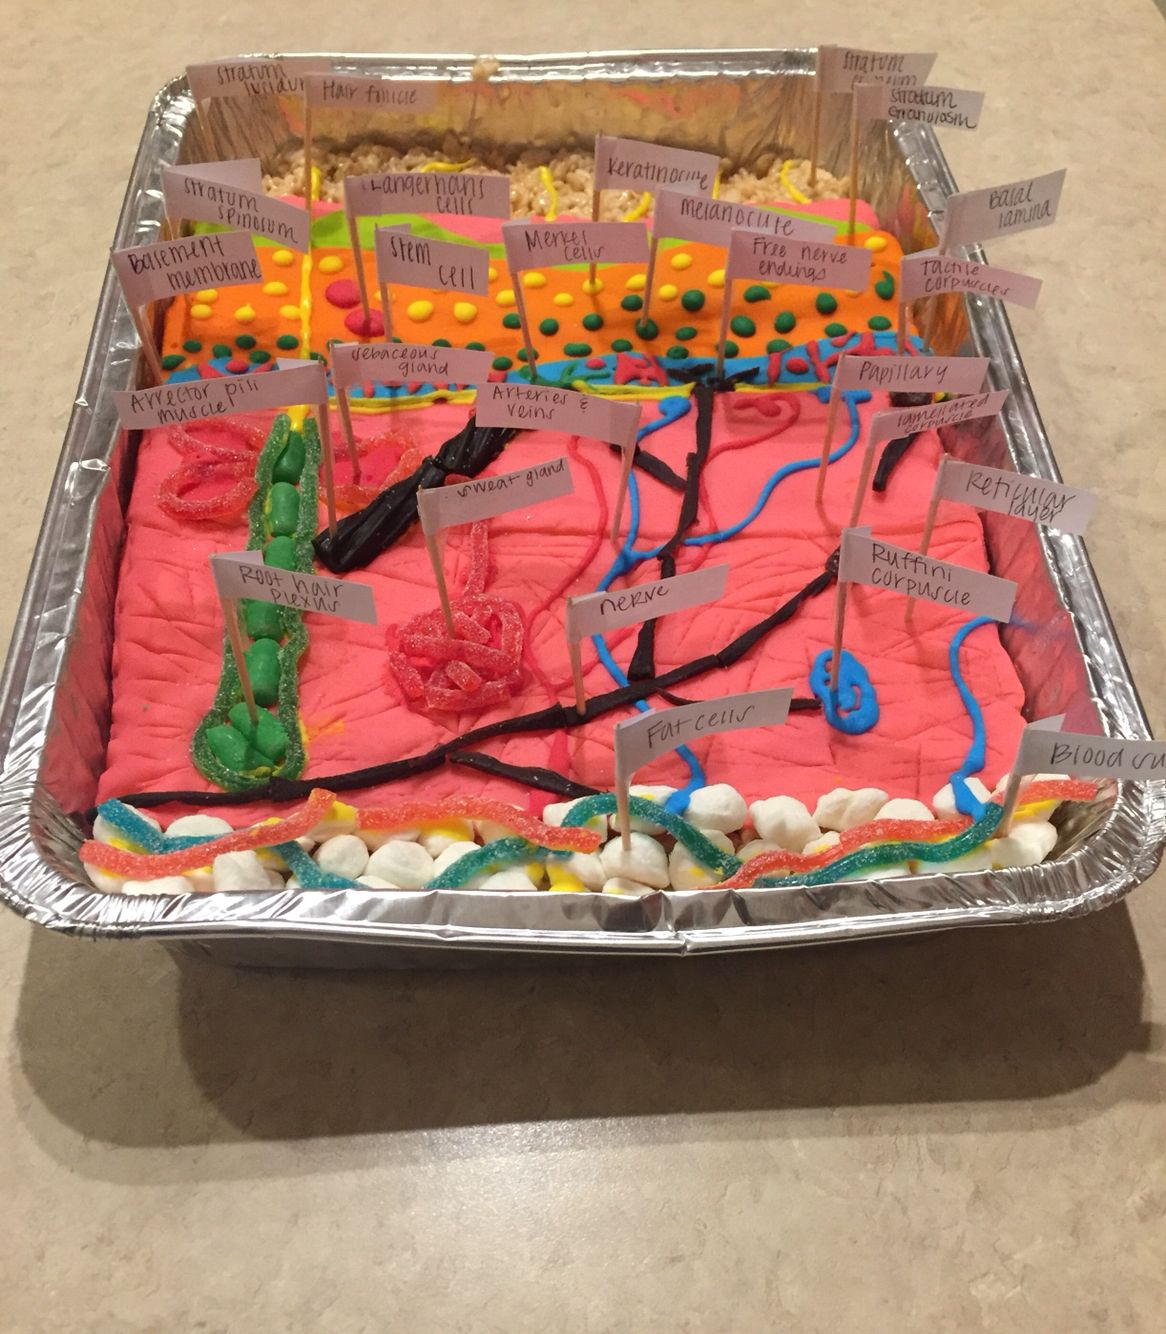 Integumentary System Model Edible Model Of Integumentary